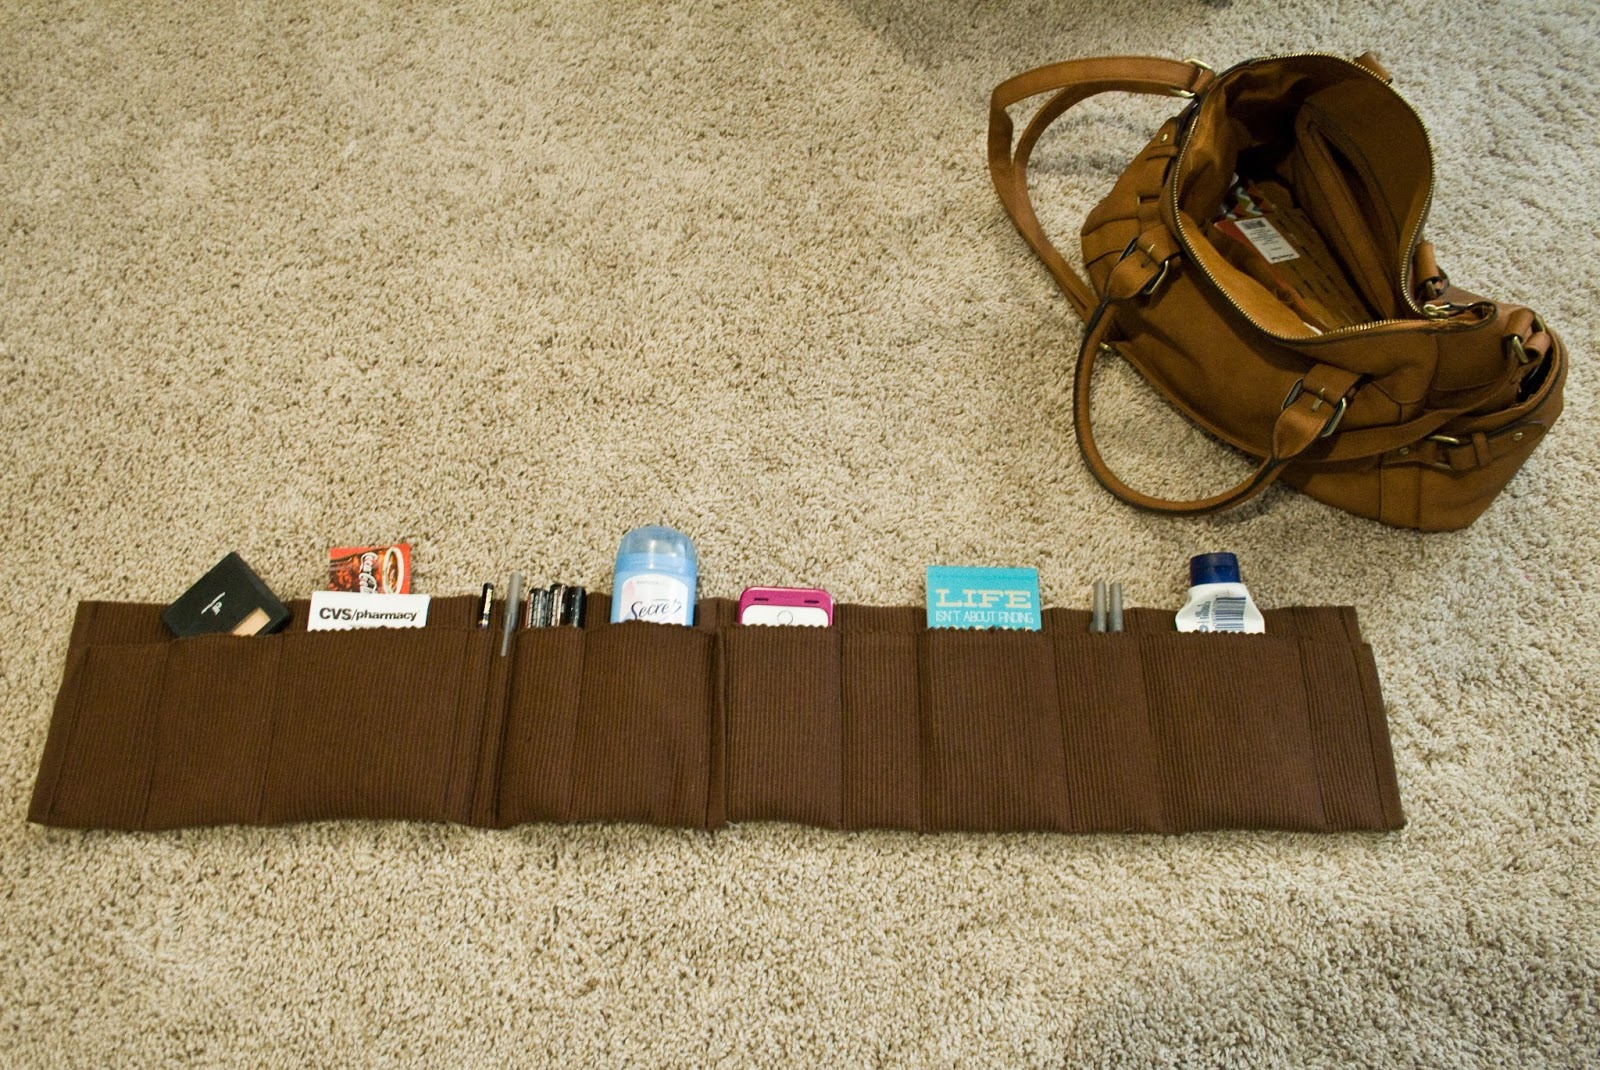 Sewing projects for kids #33 - Purse organizer